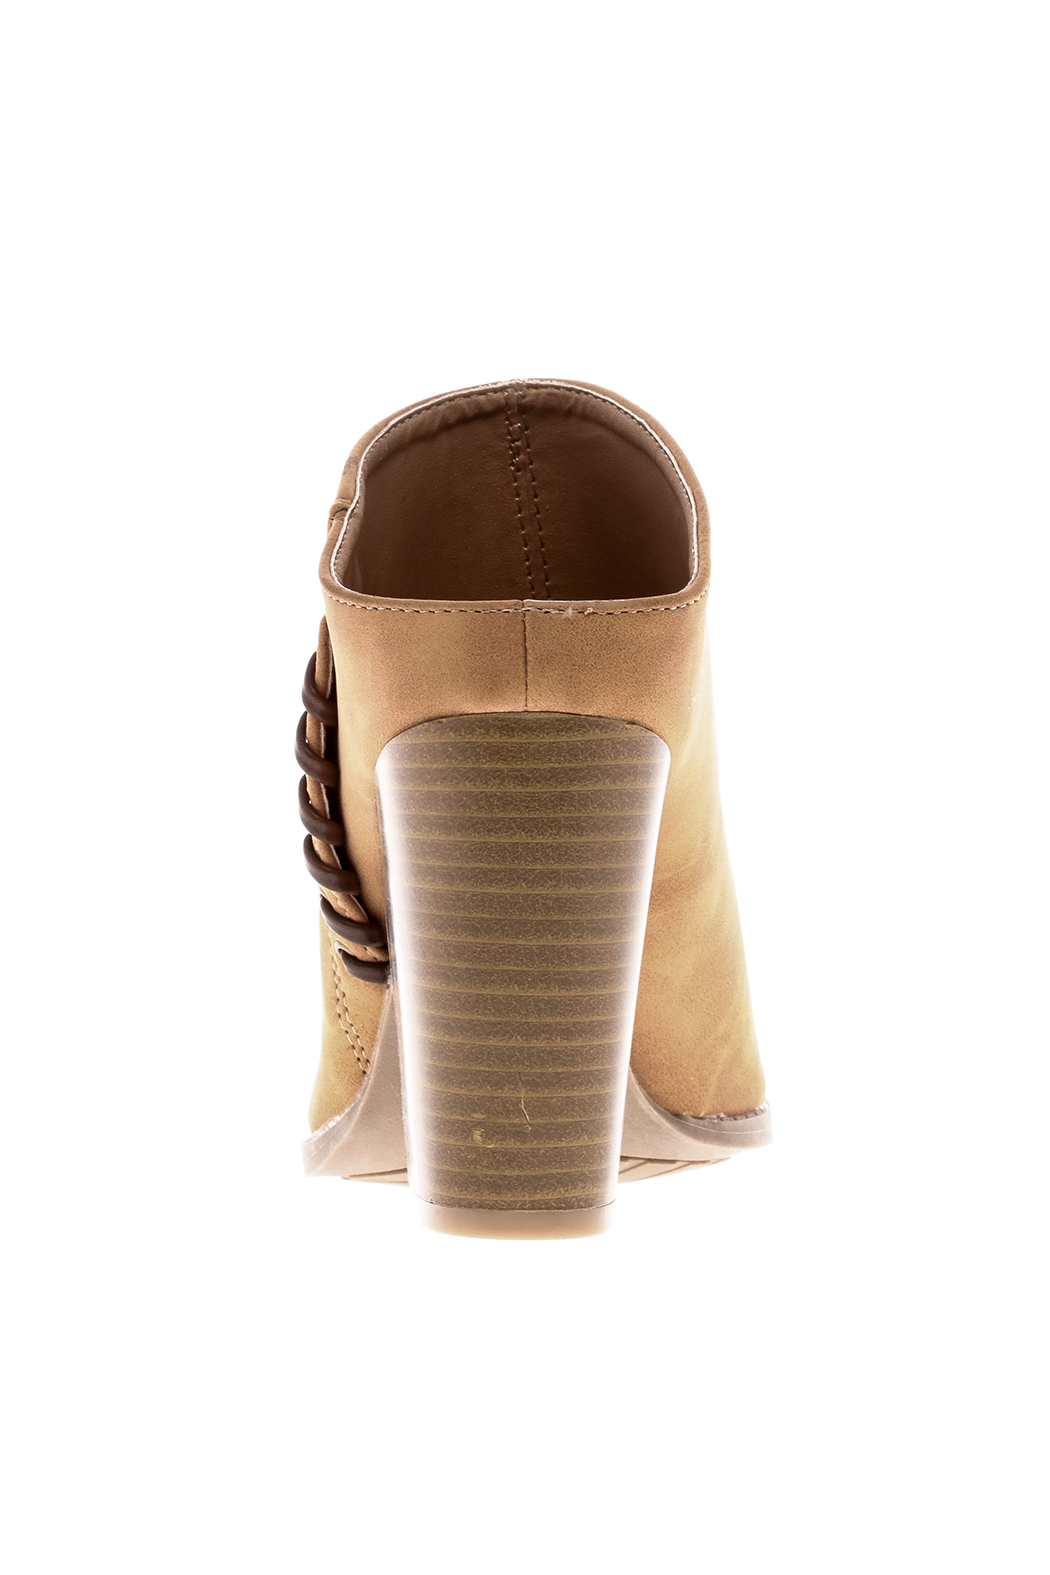 Qupid Suede Tan Stitch Mule - Back Cropped Image